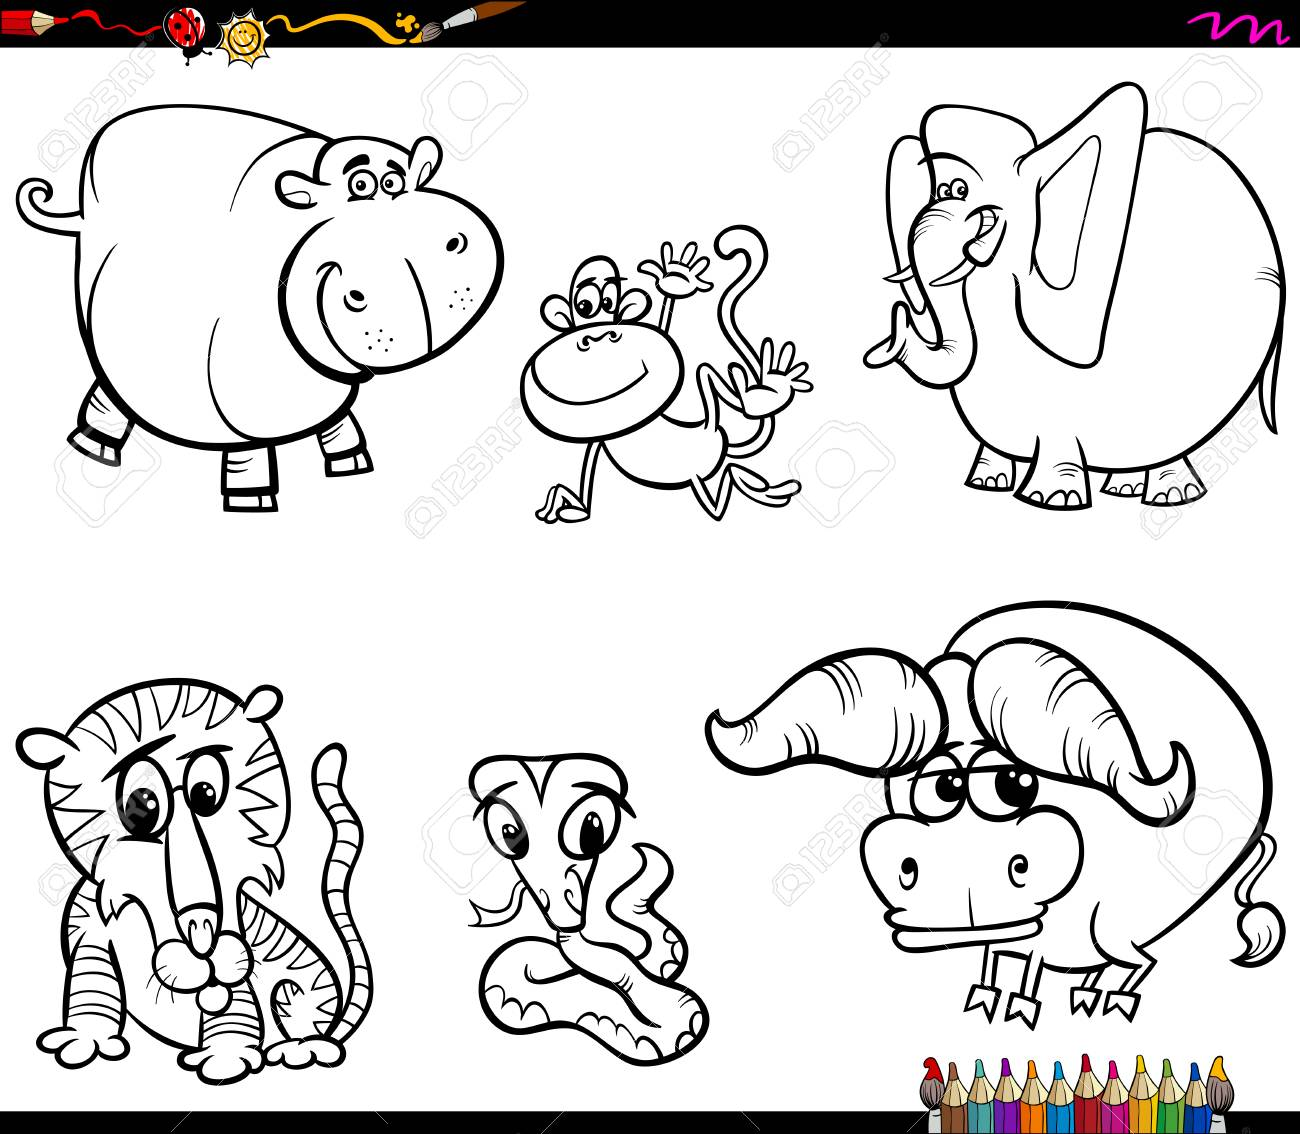 Black and White Coloring Book Cartoon Illustration of Animal Characters Collection - 121825888